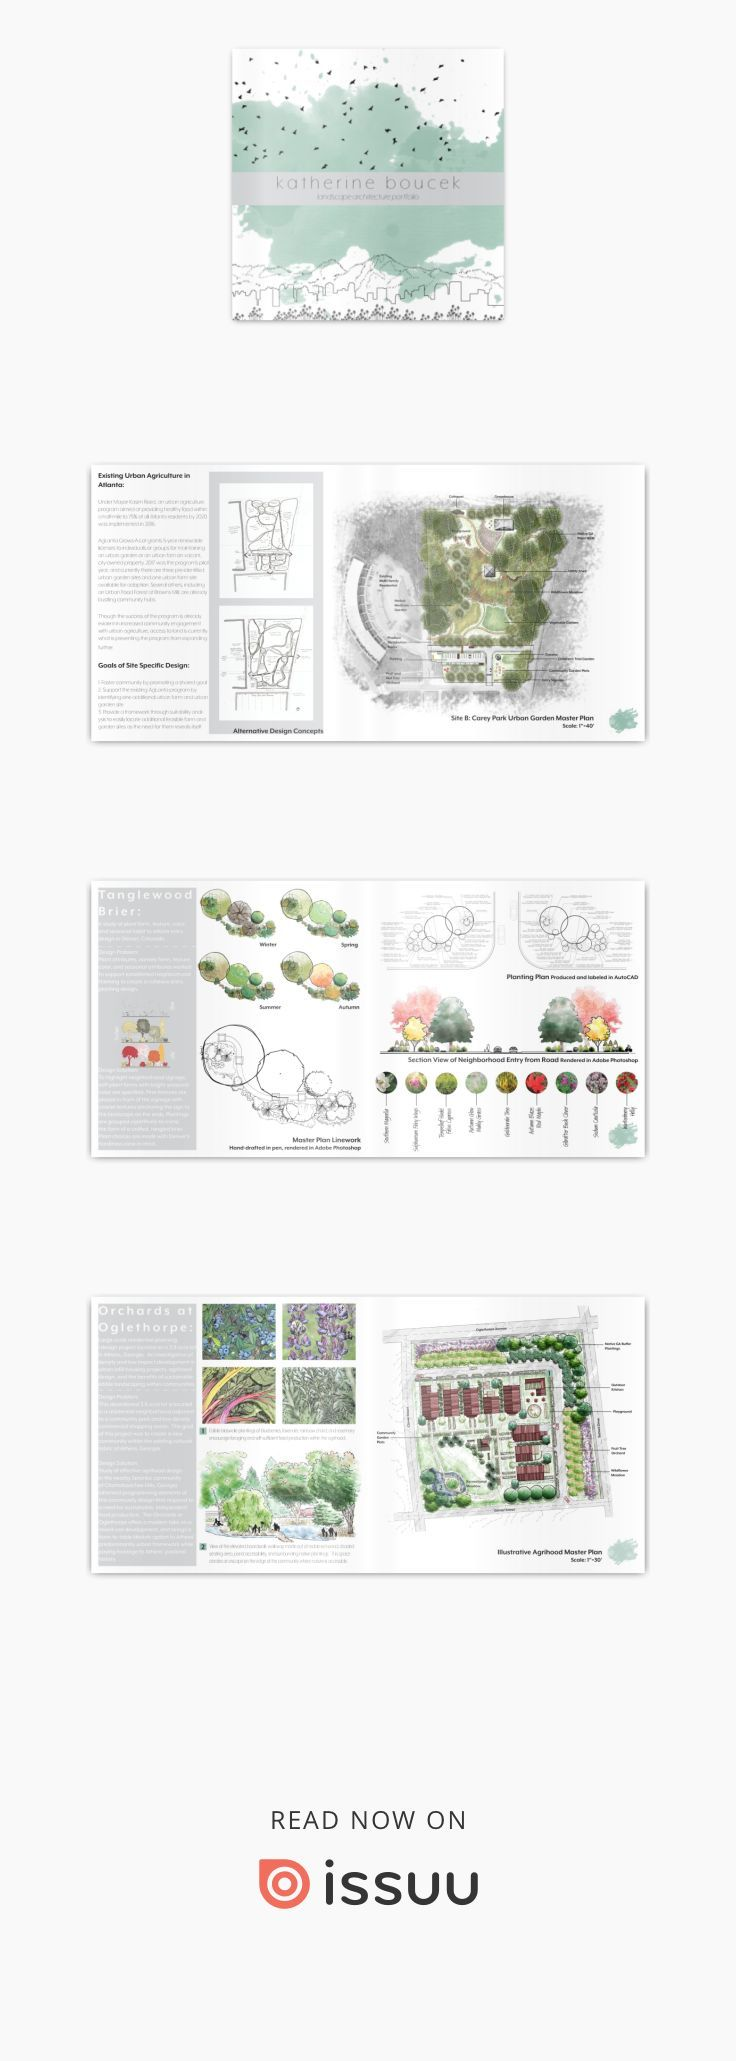 Katherine Boucek Landscape Architecture Portfolio 2018  Additional works from my time at the University of Georgia in their Bachelor of Landscape Architecture program